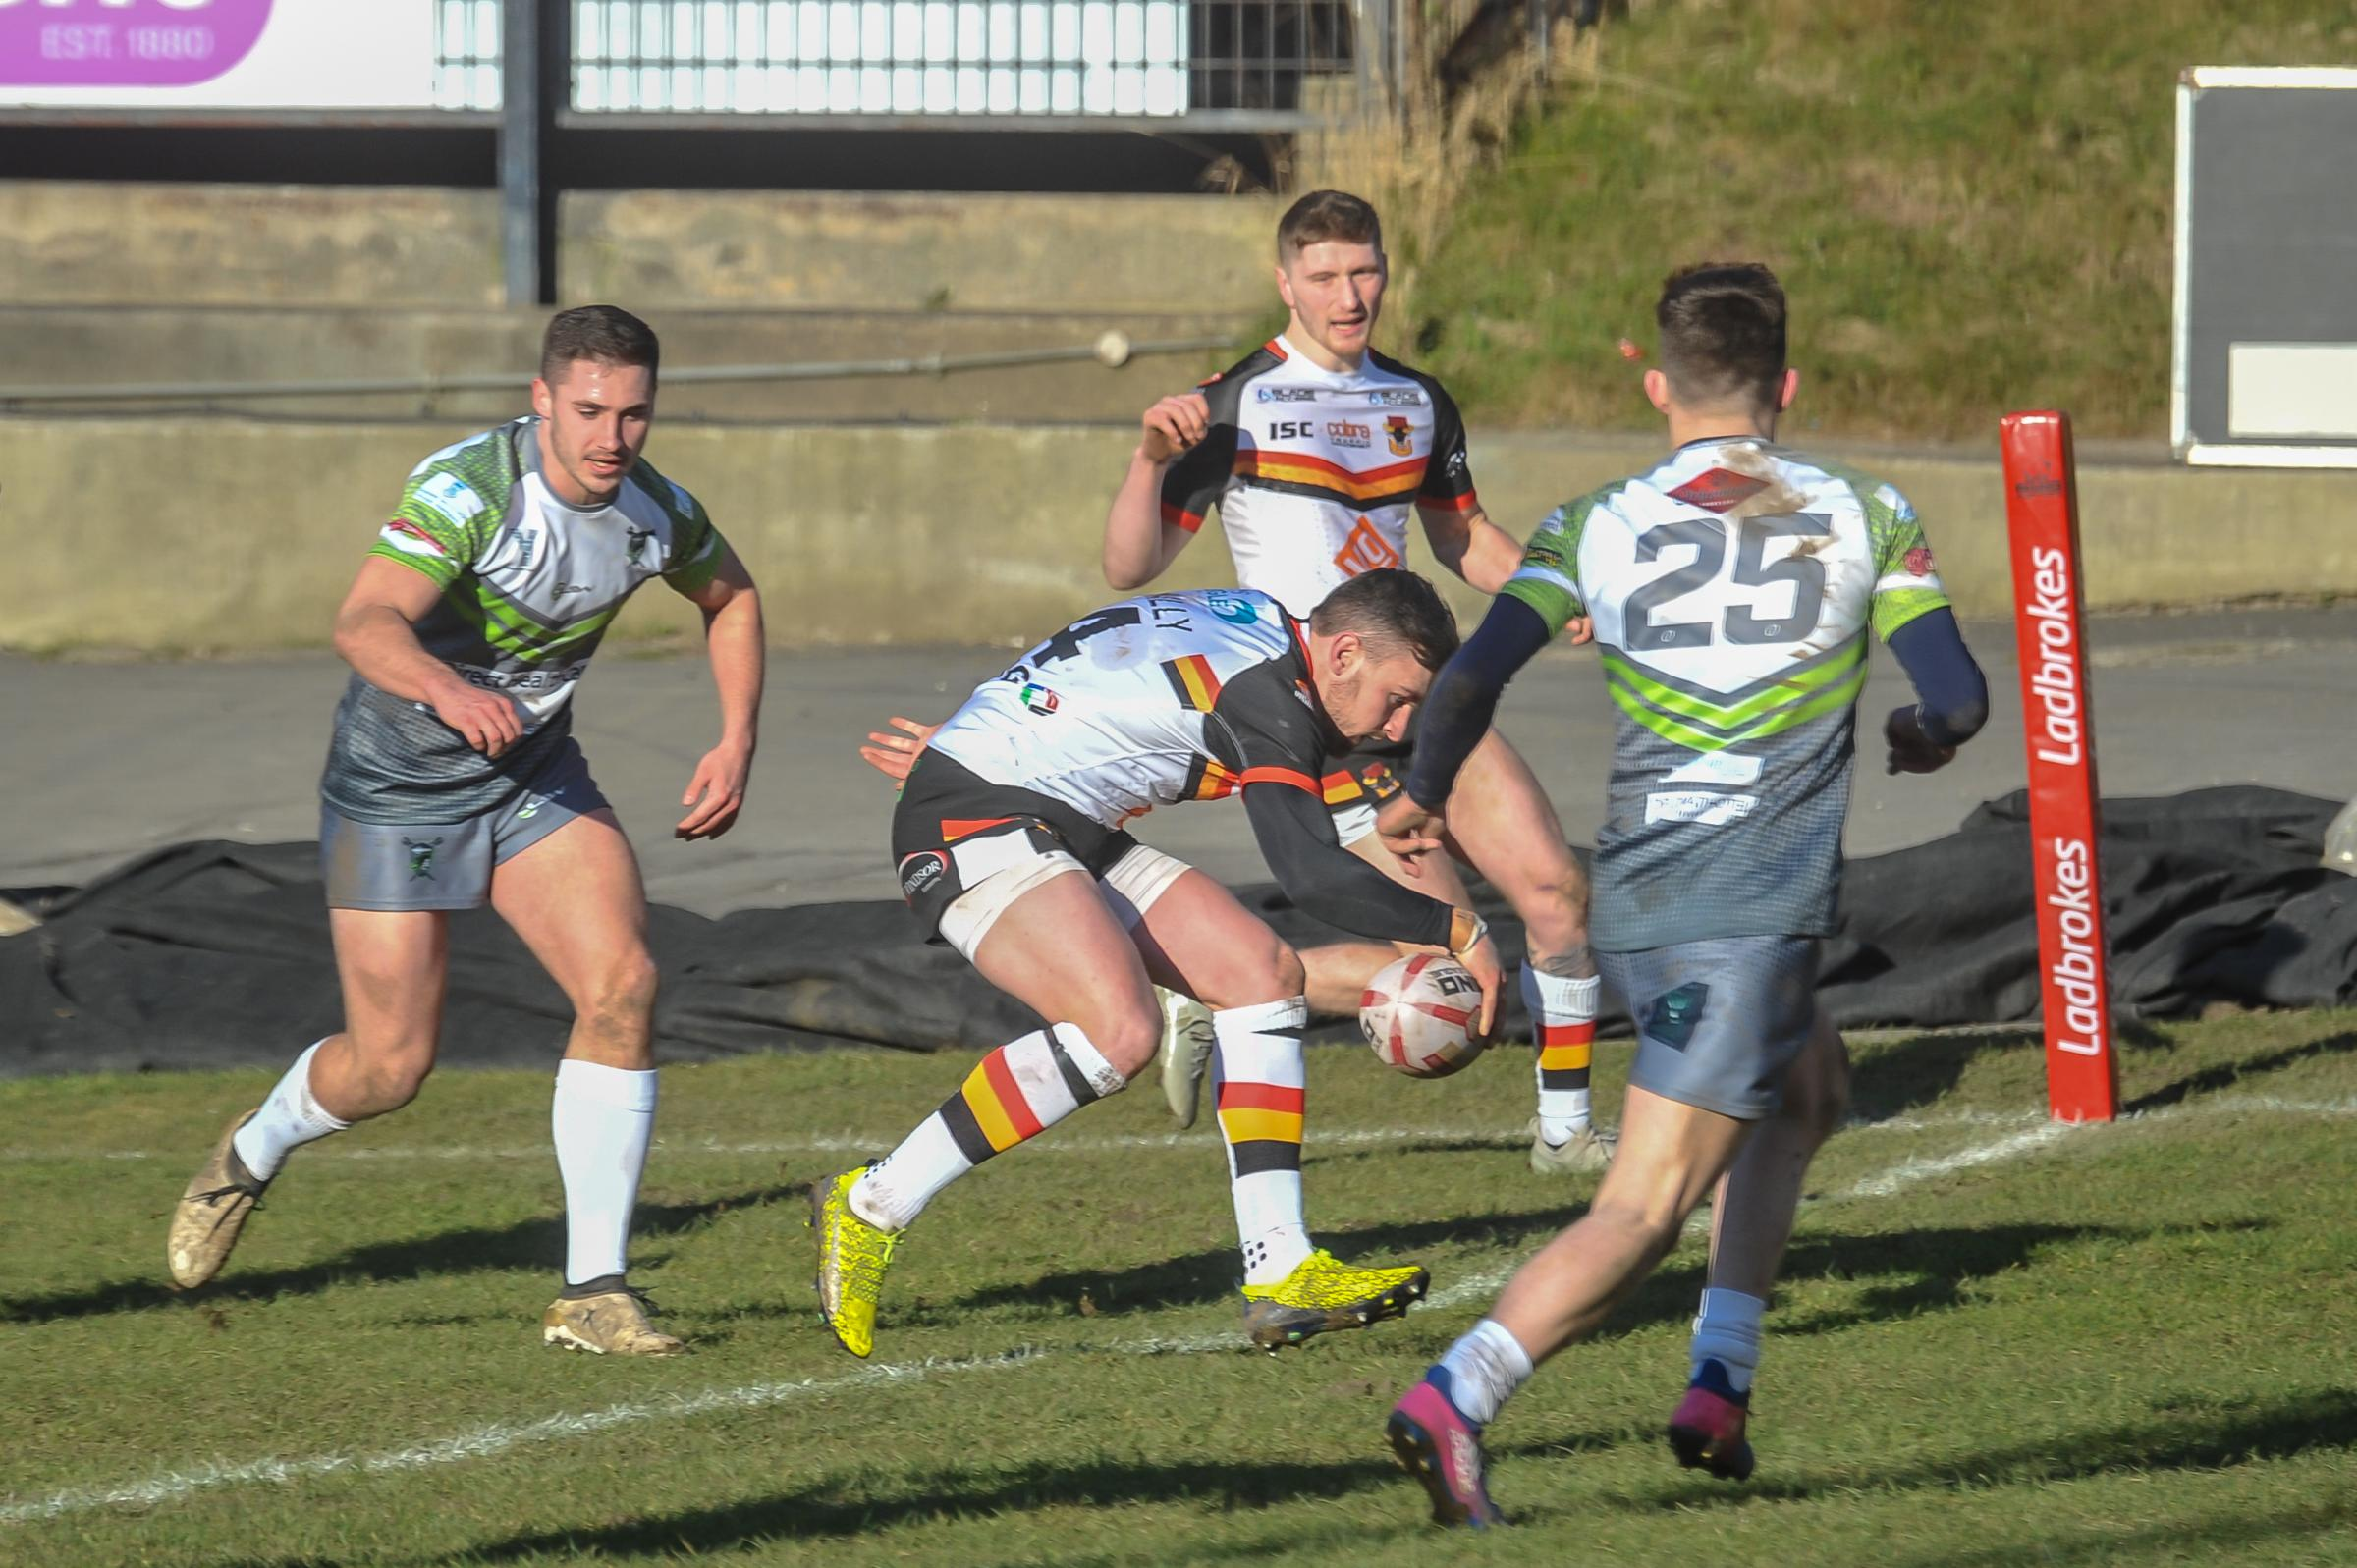 Gregg McNally scores for the Bulls in their 82-6 victory over West Wales Raiders in the third round of the Challenge Cup – Picture: Tom Pearson